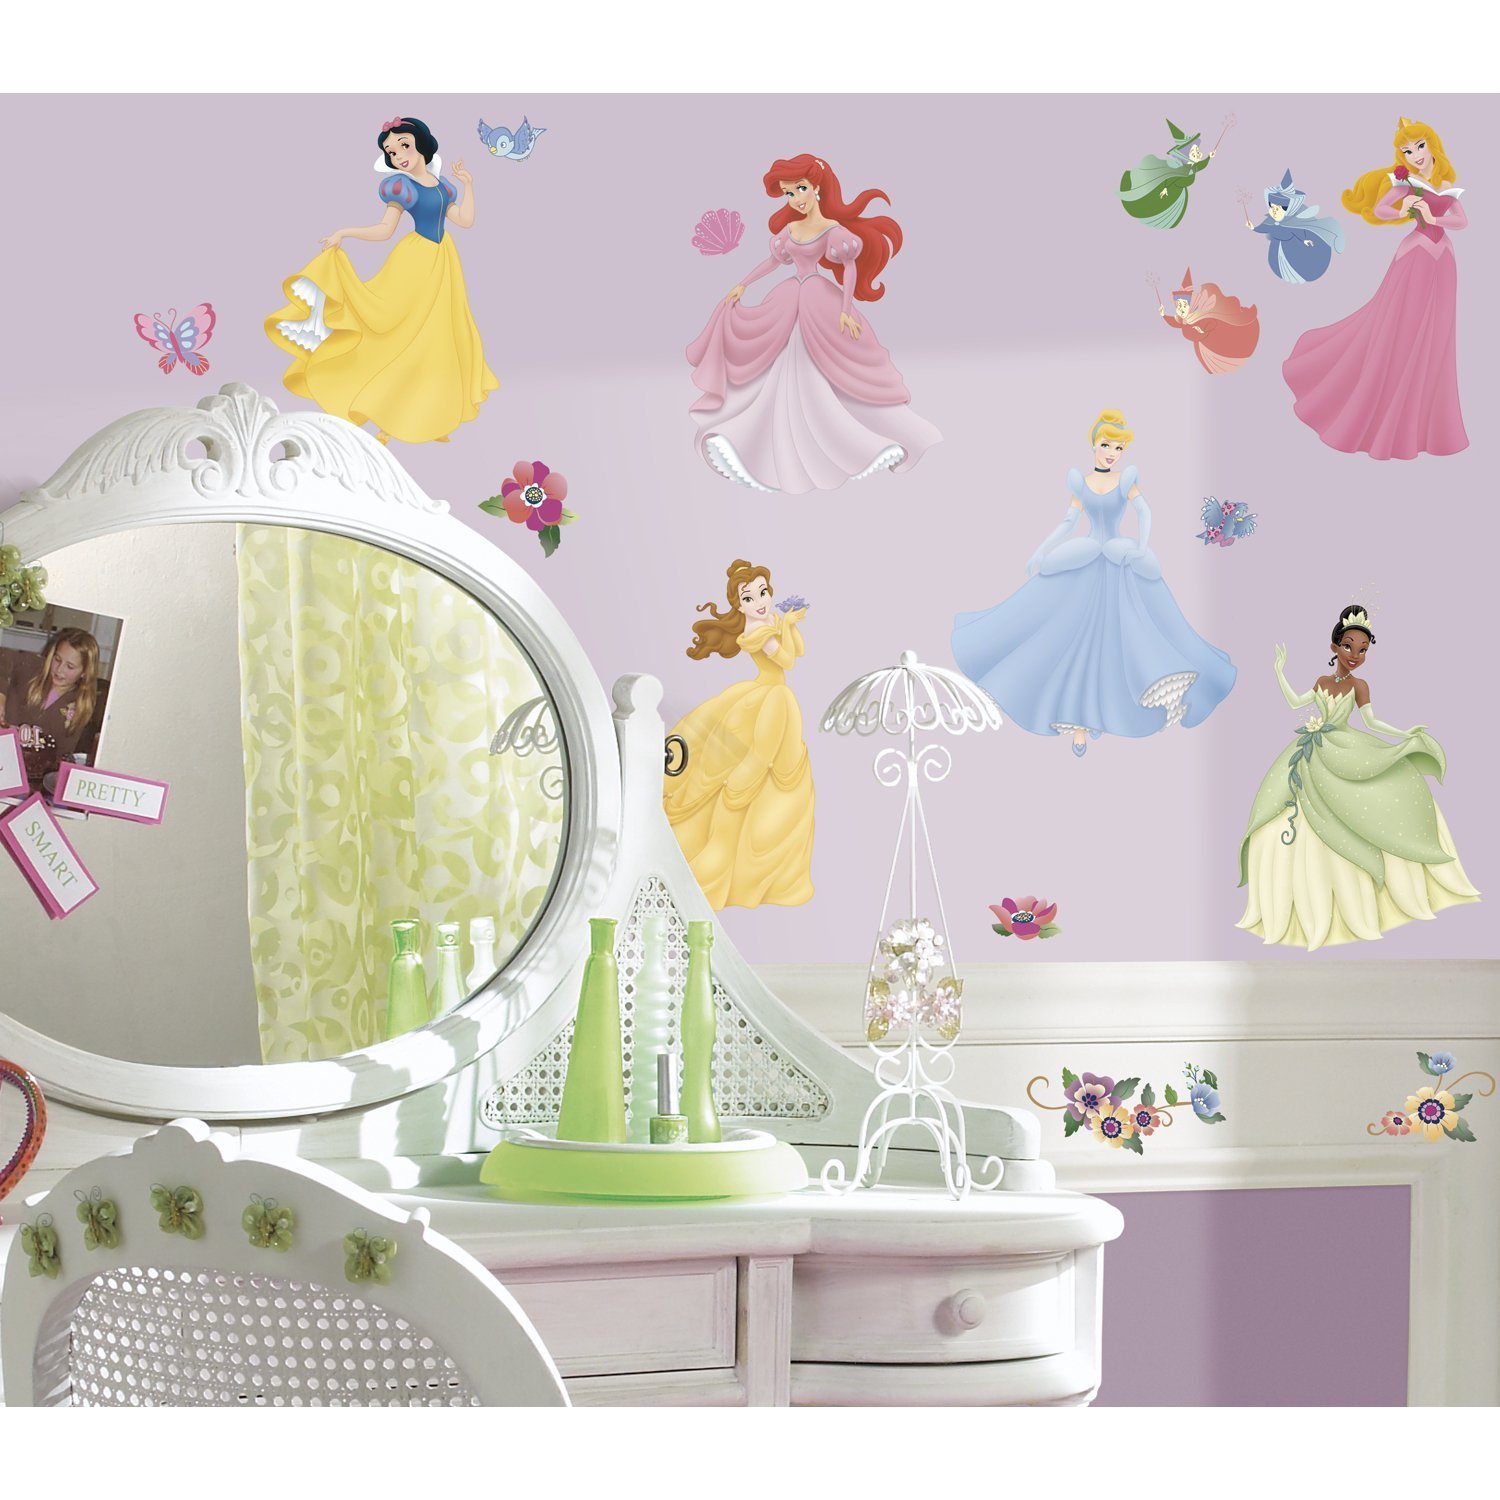 Ordinaire Disney Princess Wall Decals ...